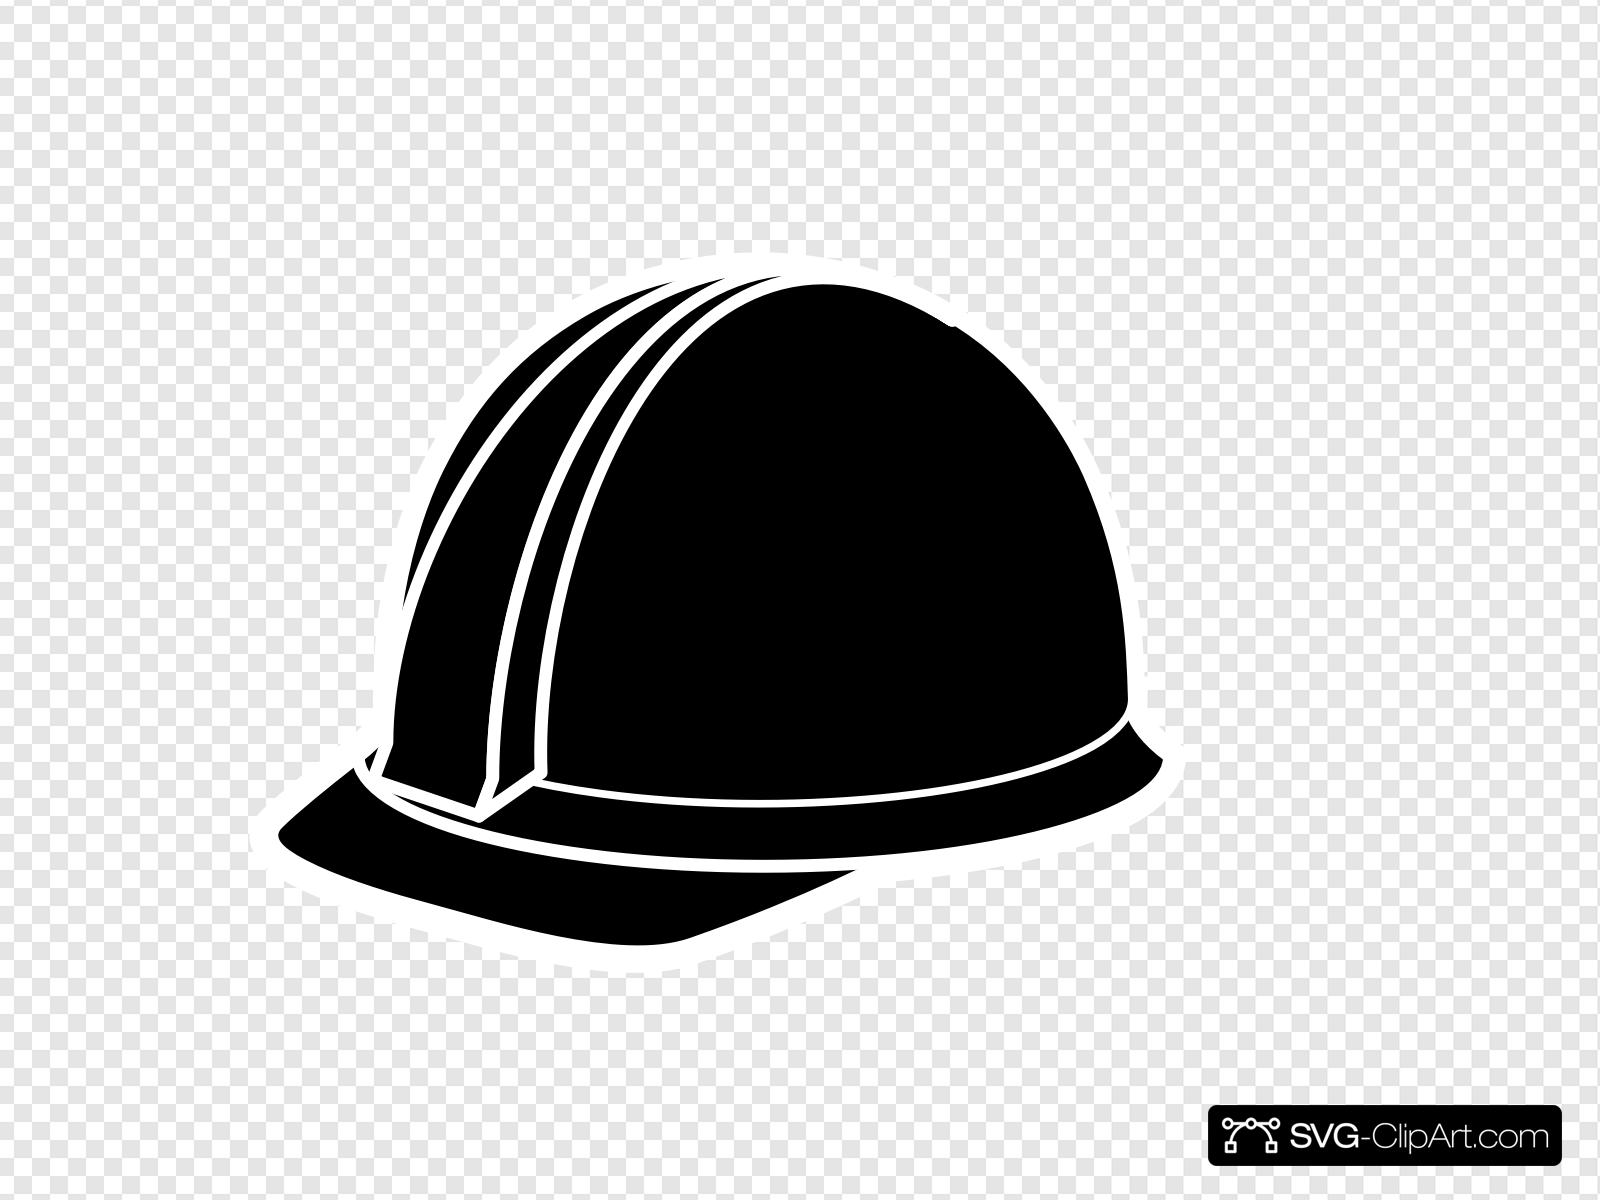 Black Hard Hat Clip art, Icon and SVG.